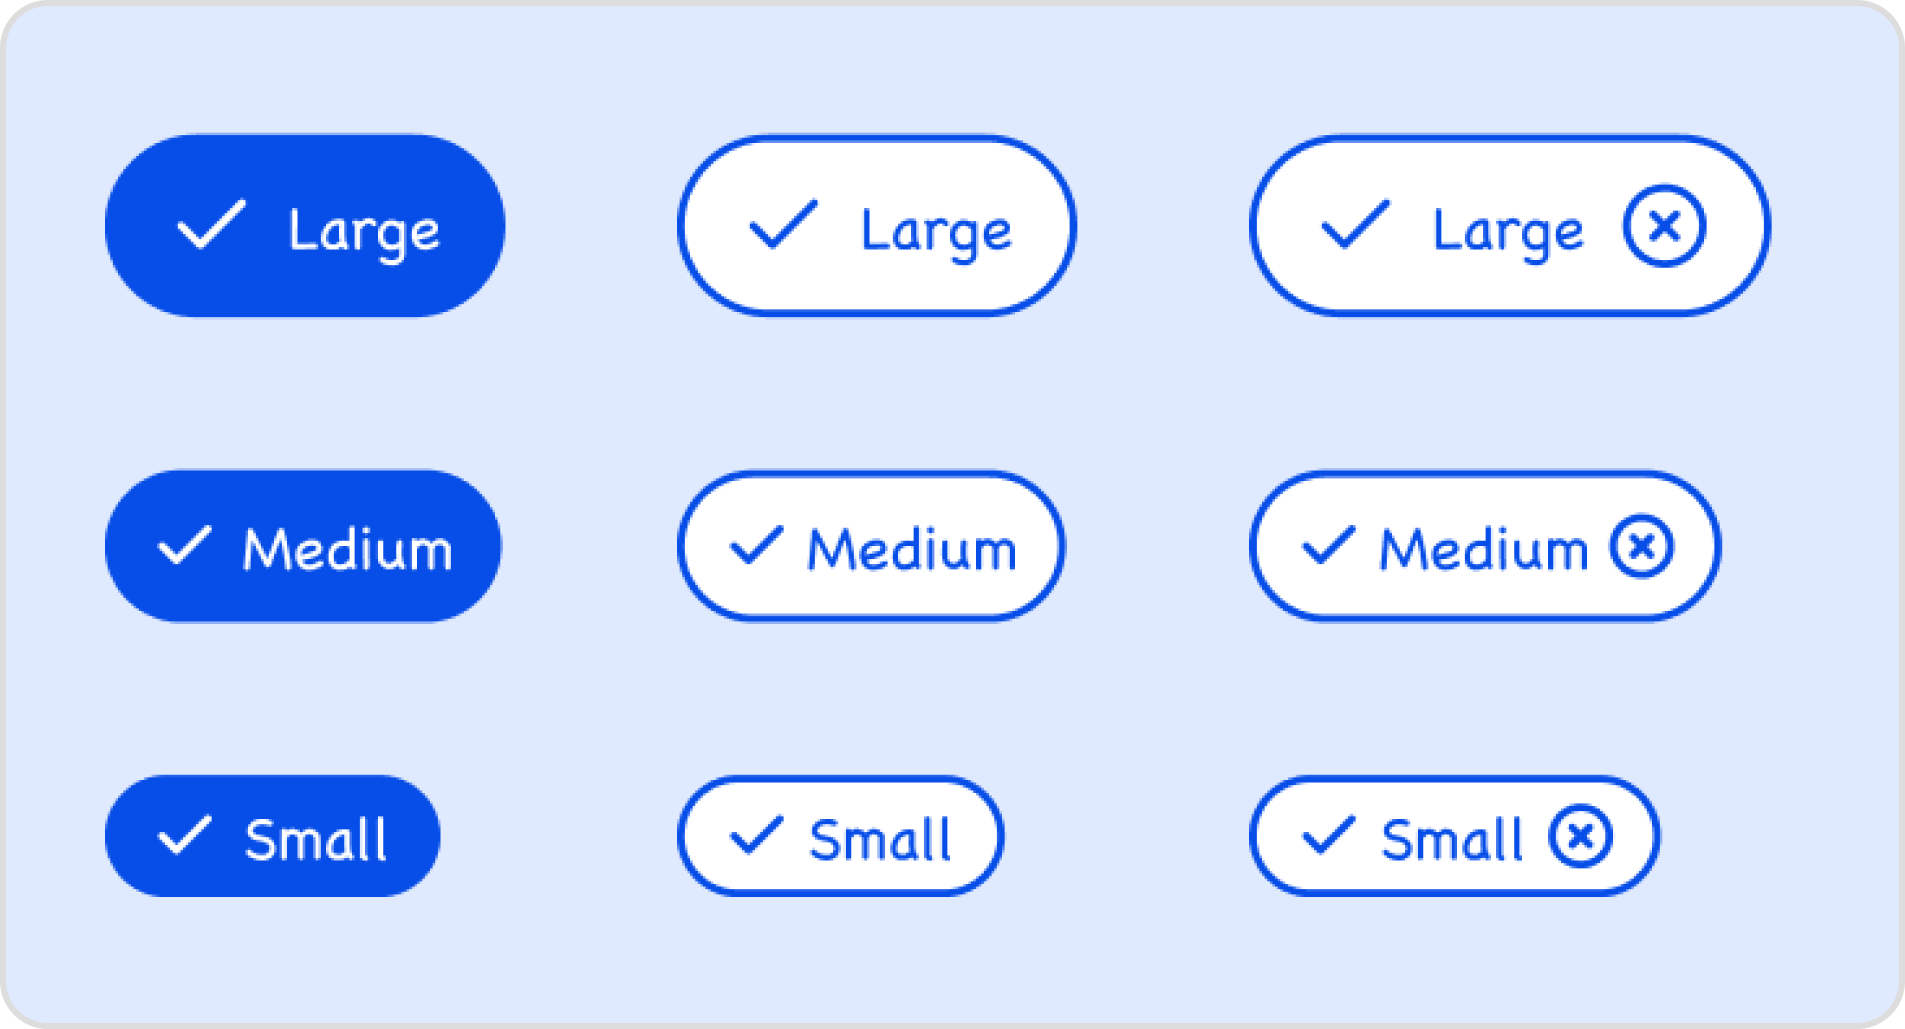 Sample buttons for lo-fi wireframe kit.